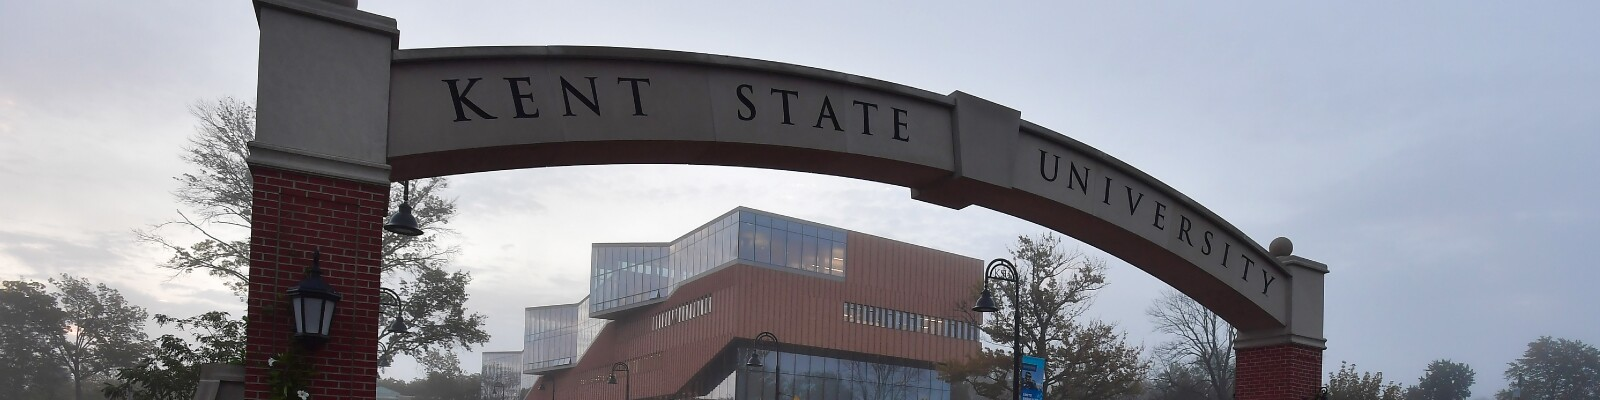 Kent State University arched sign on campus